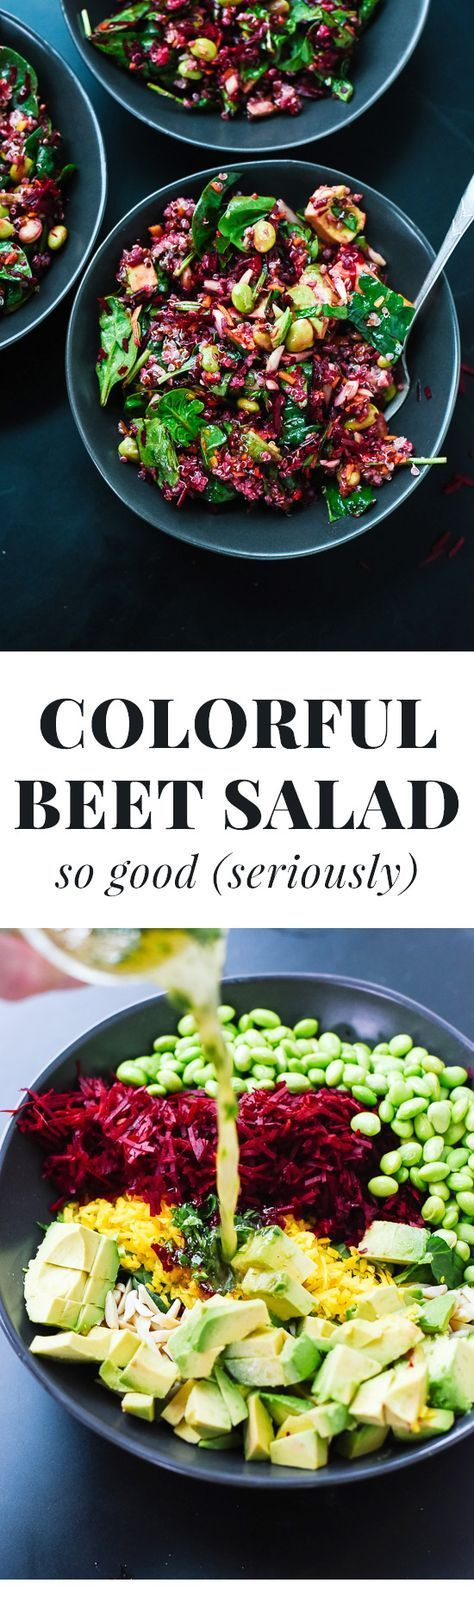 Everyone loves this healthy raw beet salad recipe with quinoa, carrots and spinach! Who knew shredded raw beets could be so good?